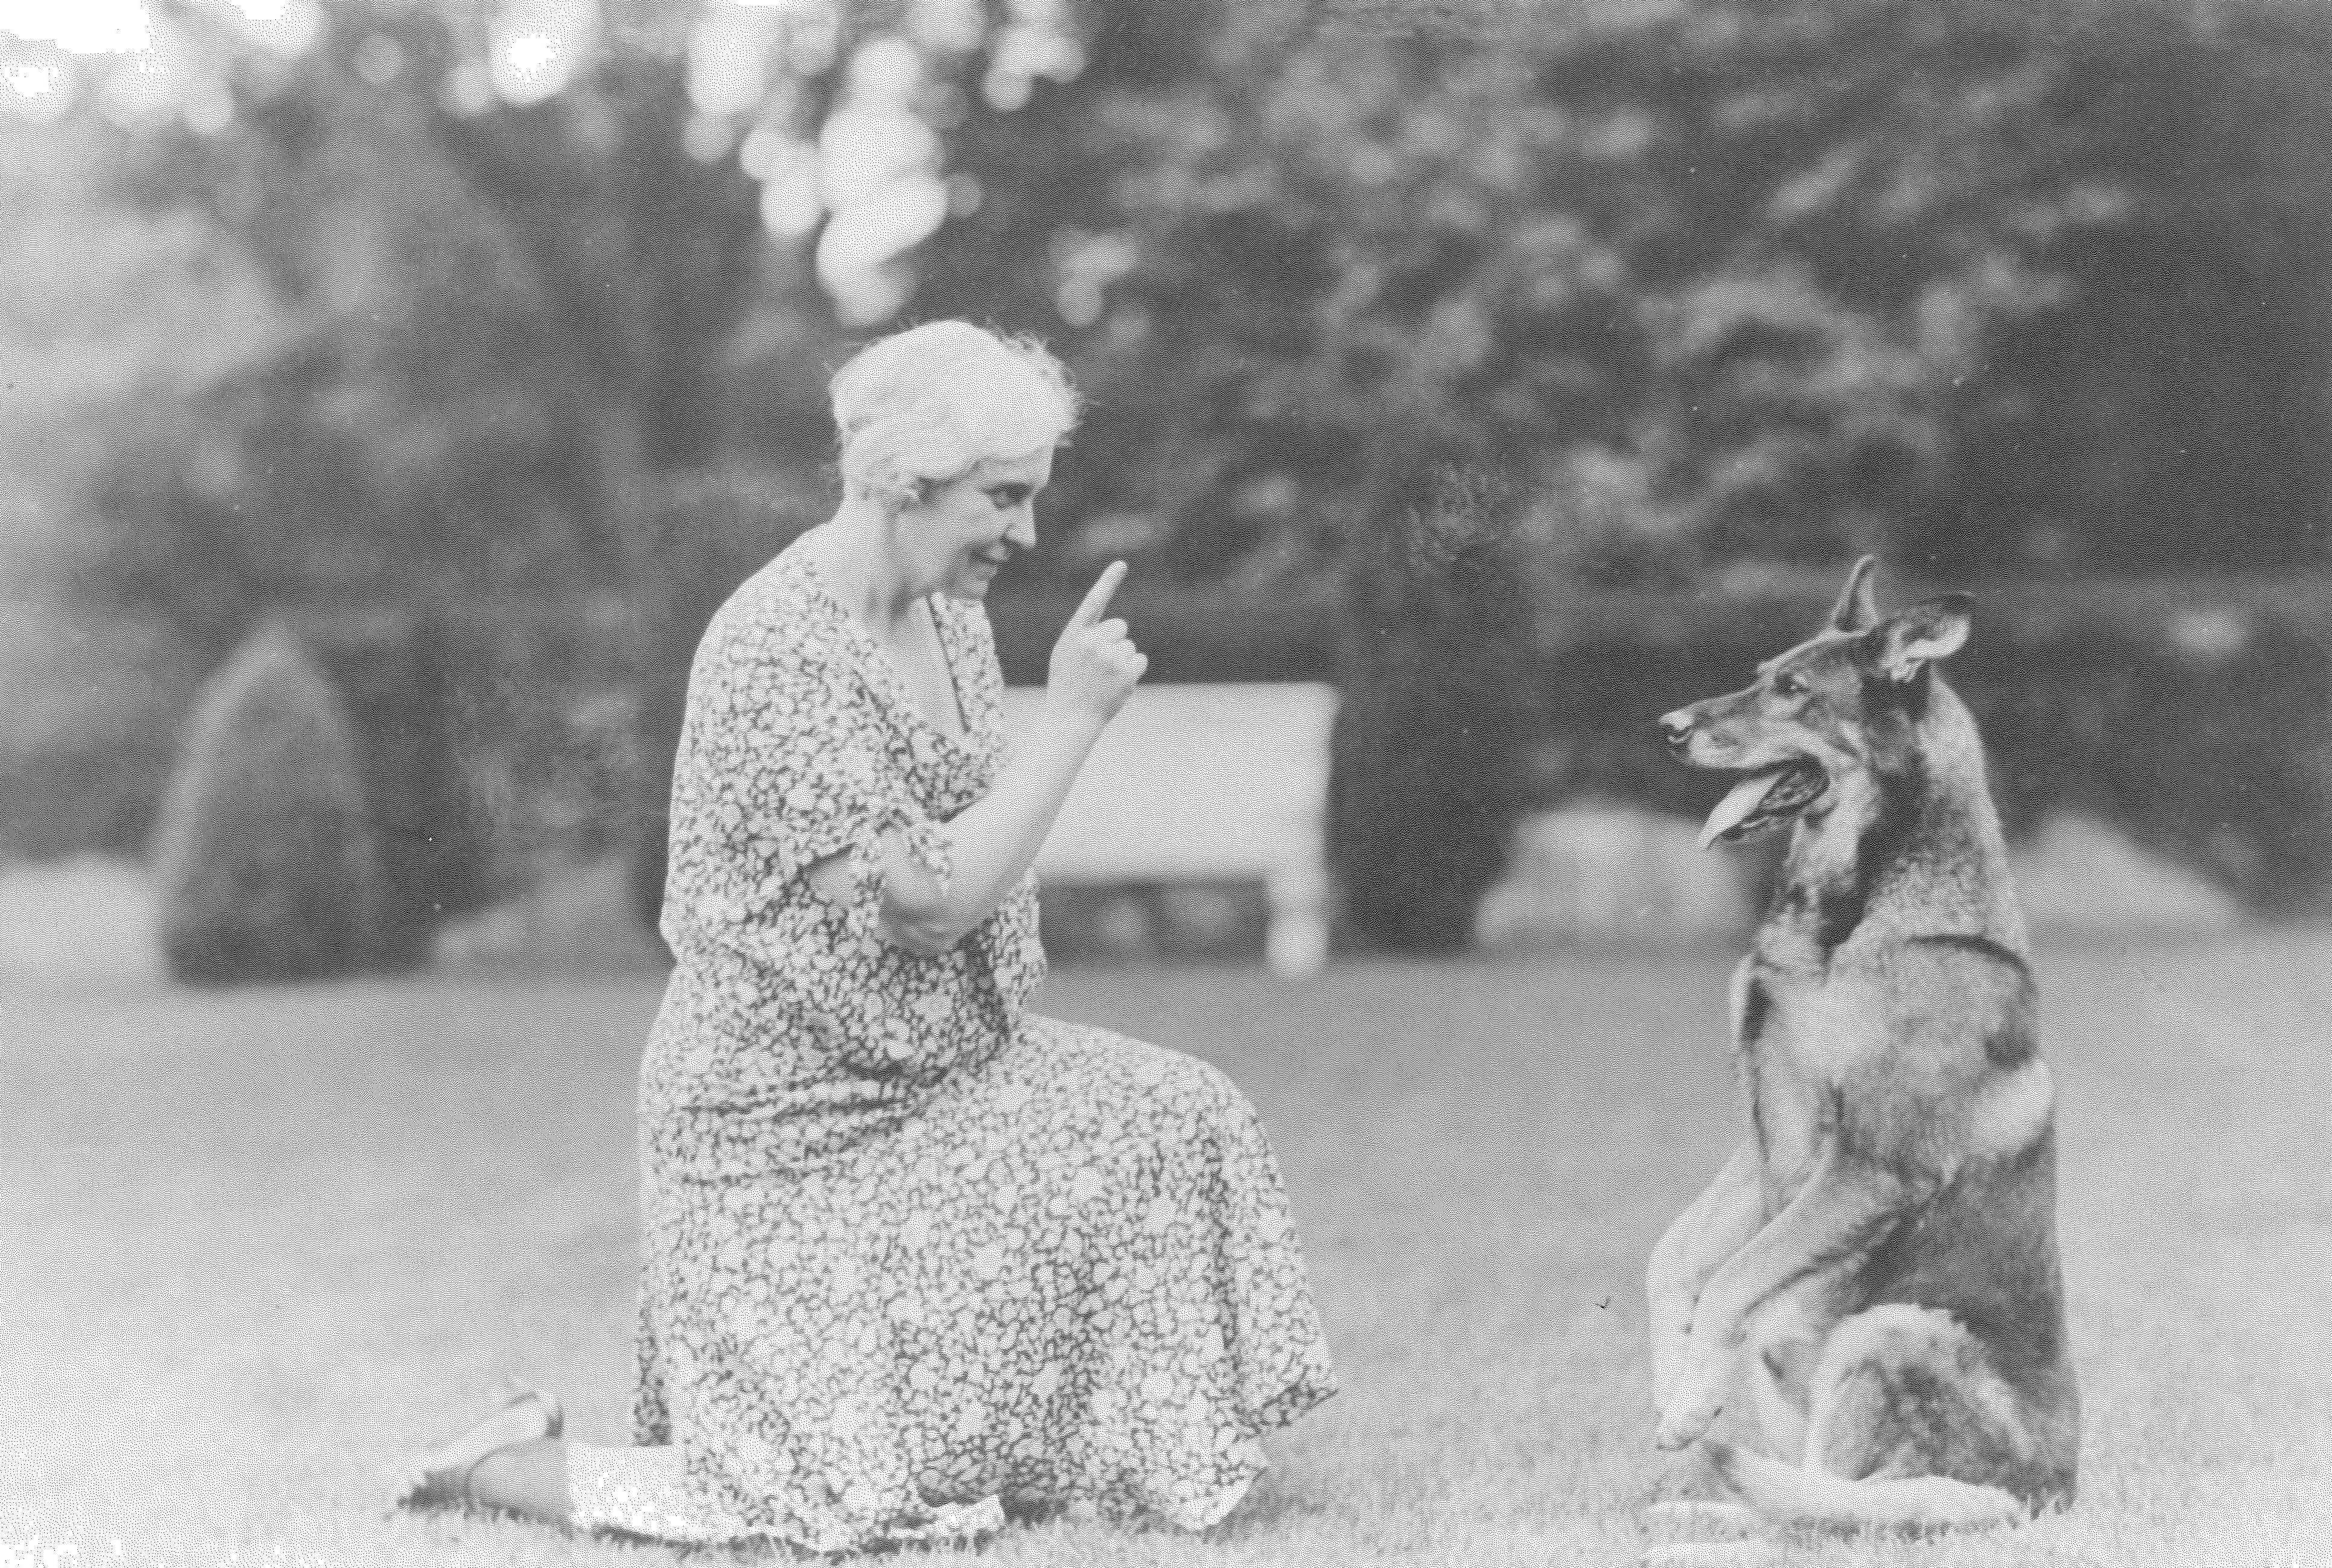 Geraldine Dodge with Rin Tin Tin